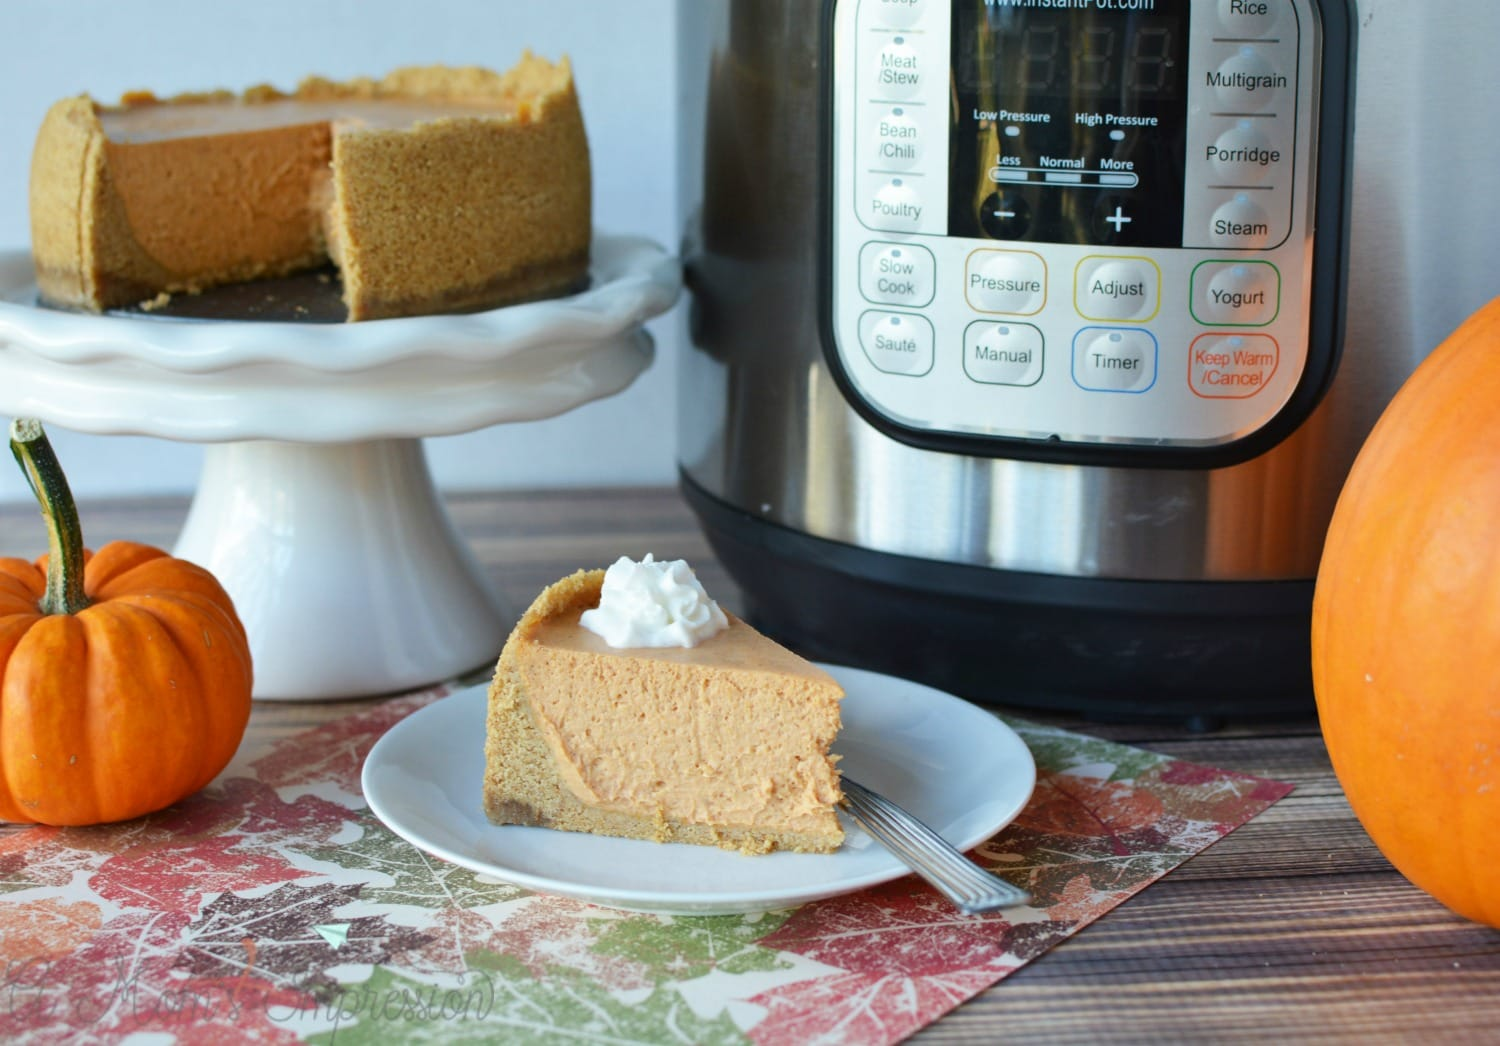 Instant Pot Pumpkin cheesecake sitting on a white plate with pumpkins.